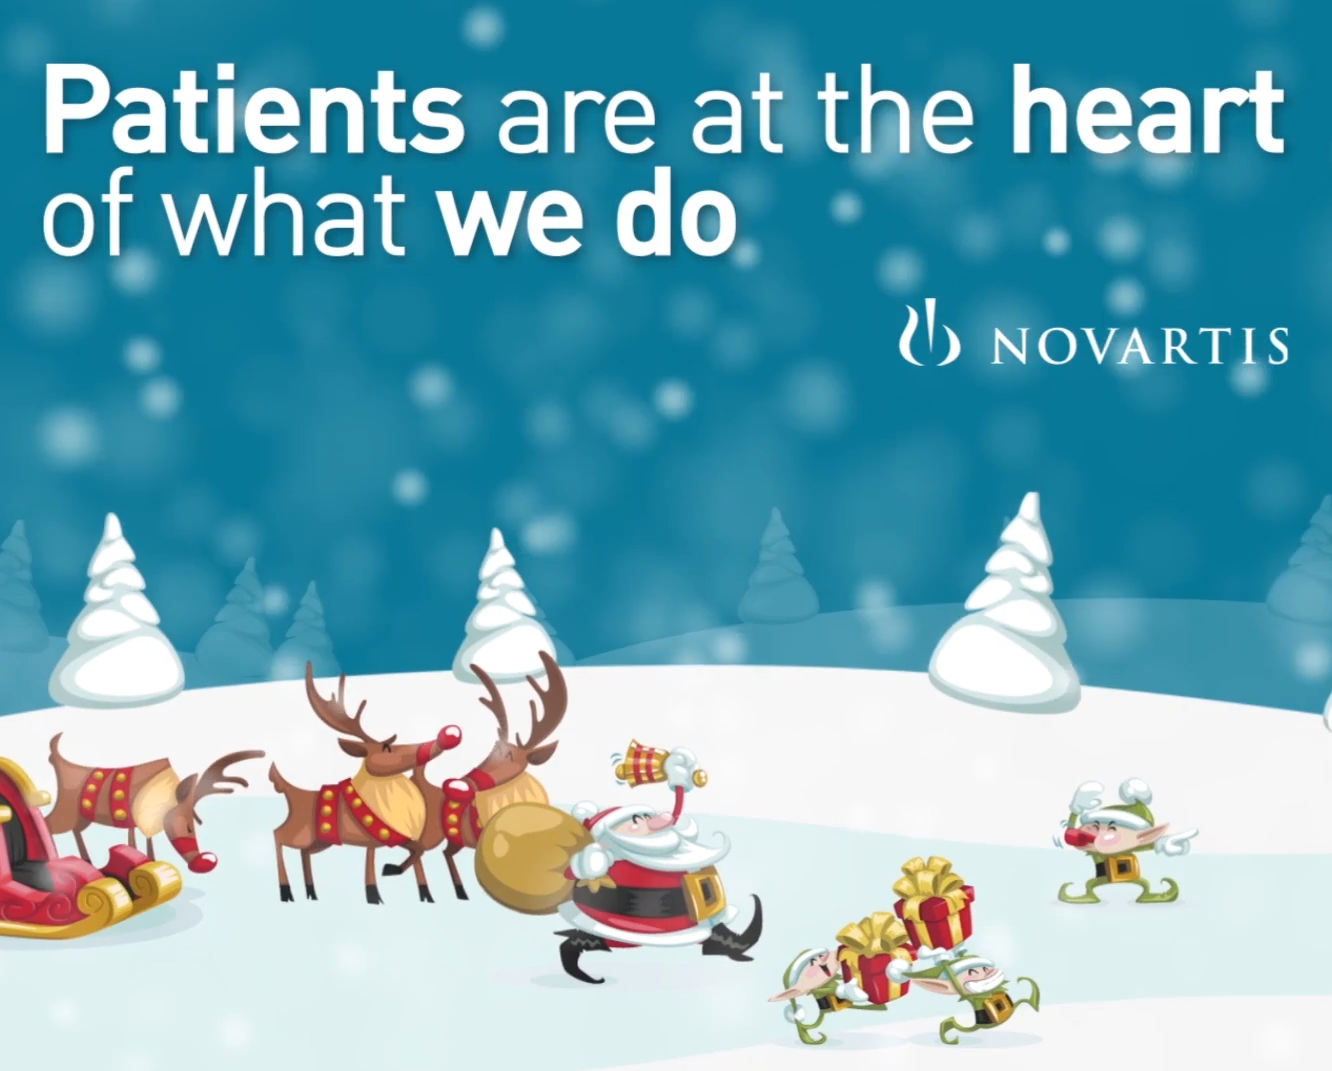 novartis-greetings-02